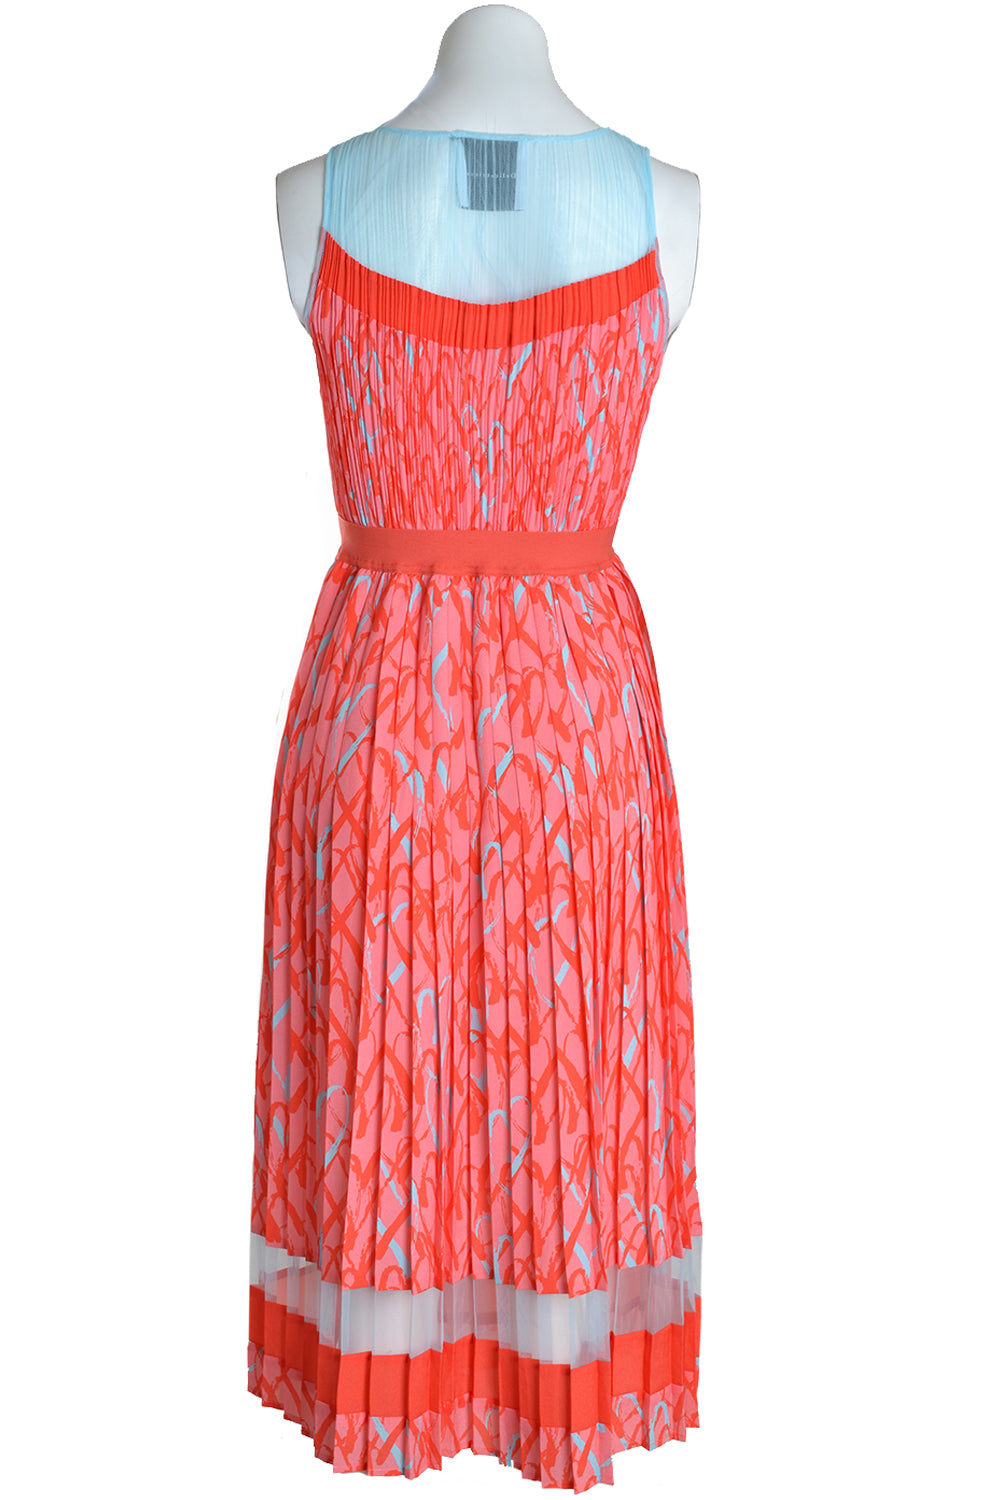 Delicate Love Dress KIRA Heart Print Red